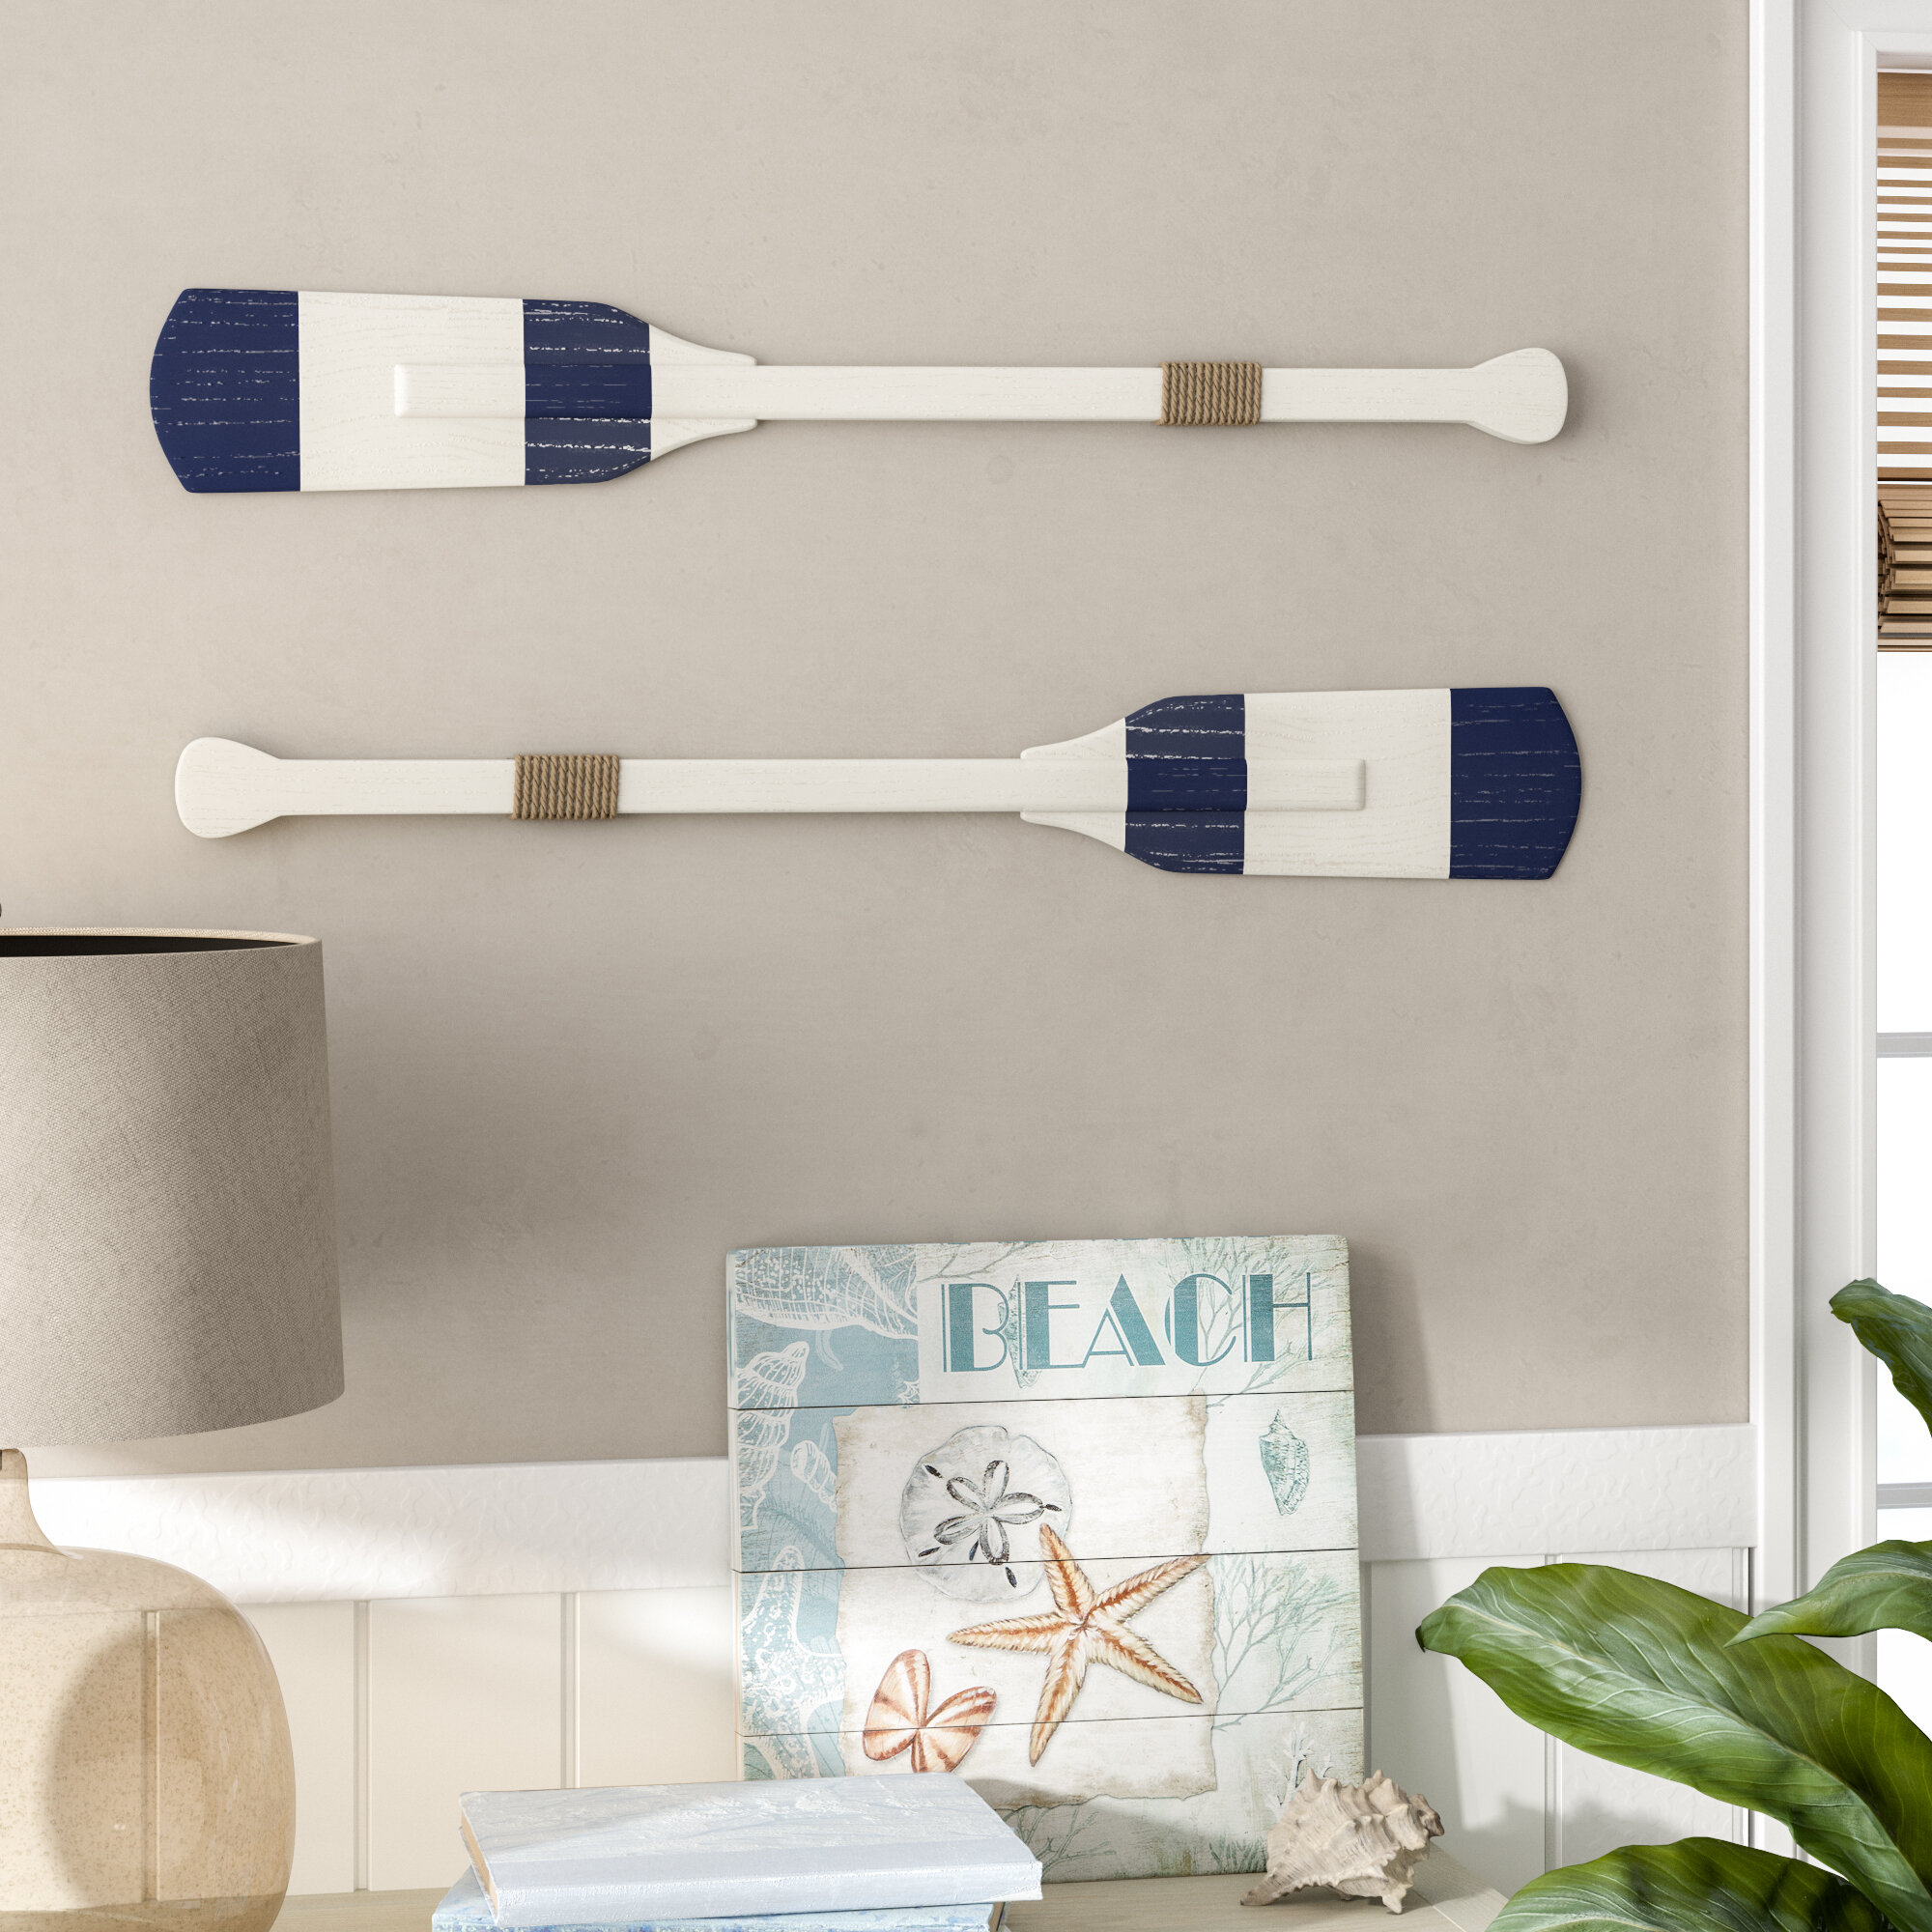 Rustic Rowing Oar Wall Decor